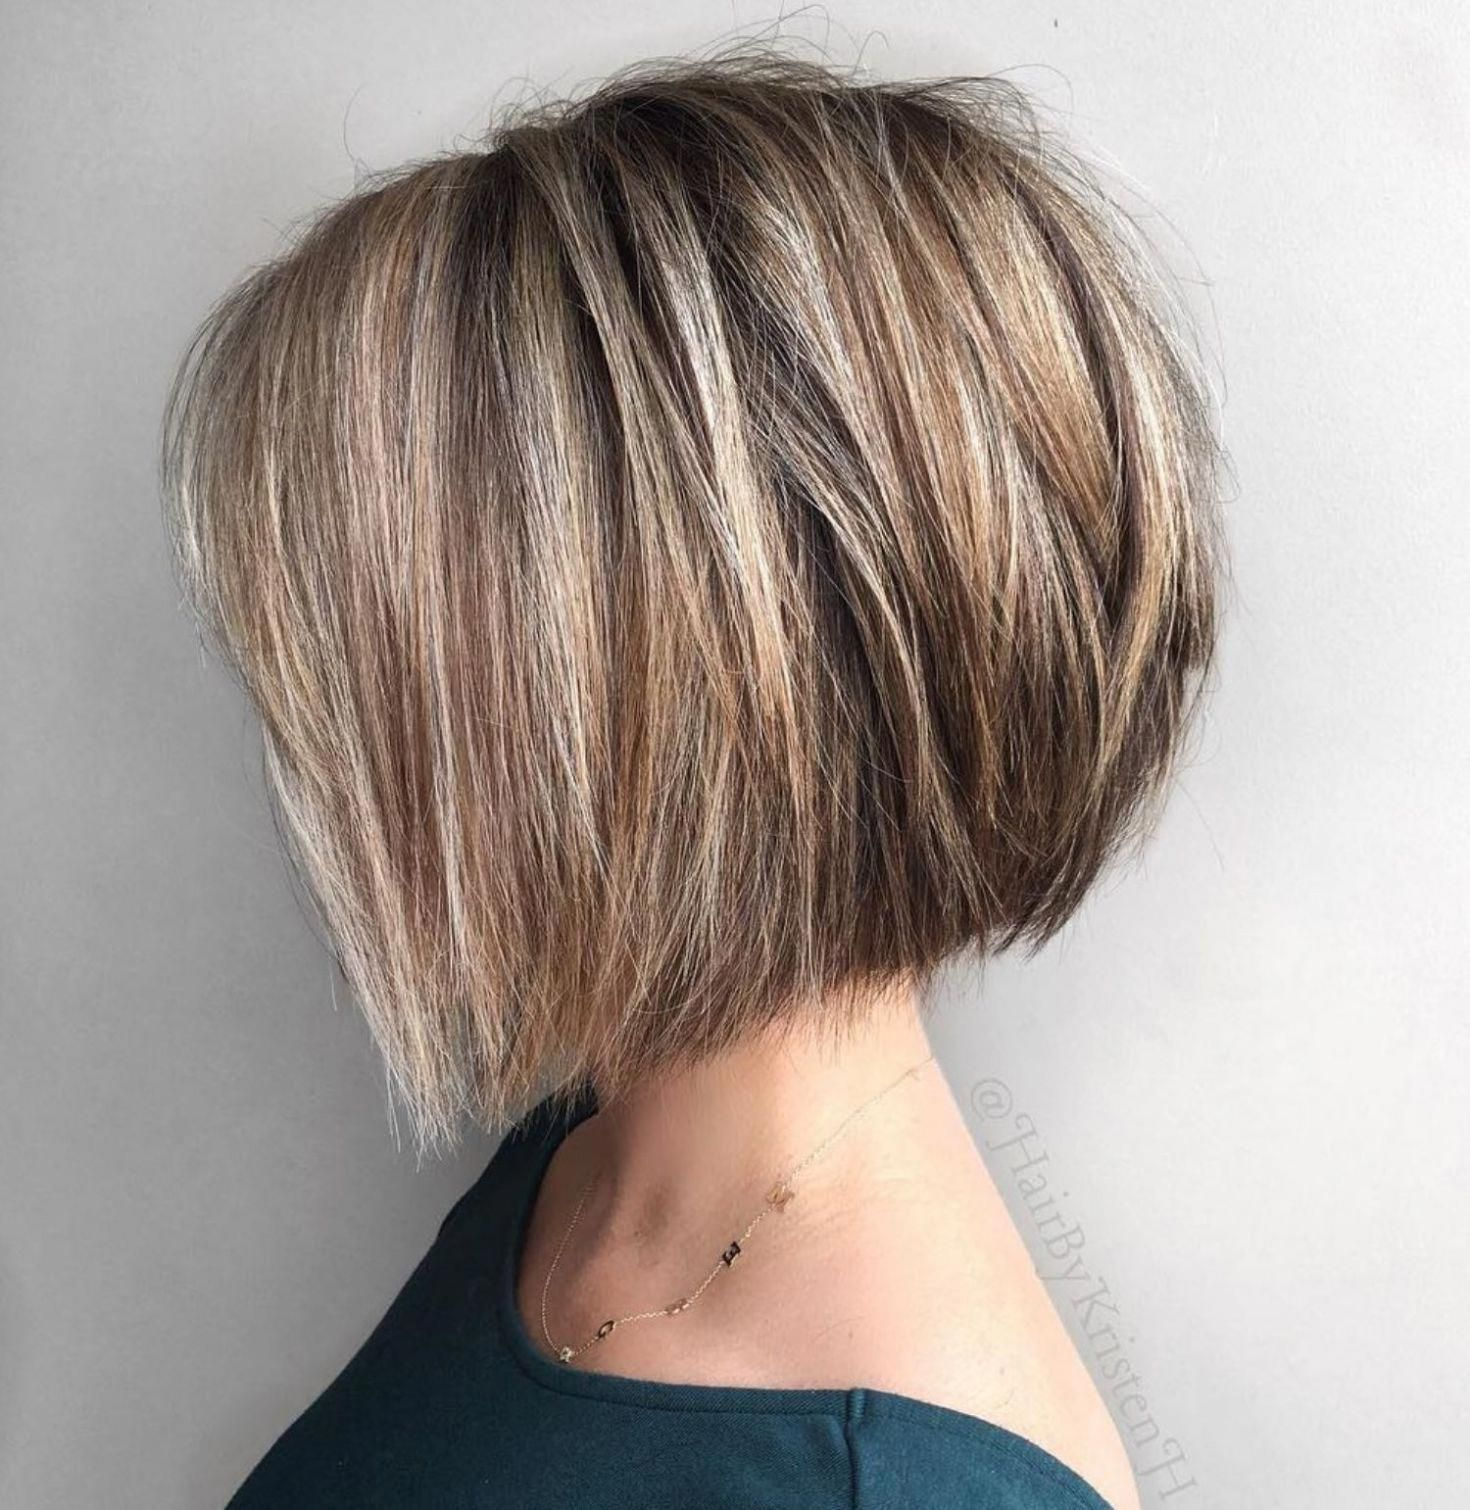 Straight Textured Angled Bronde Bob Shortbobhairstyles Thick Hair Styles Bob Hairstyles For Thick Haircut For Thick Hair